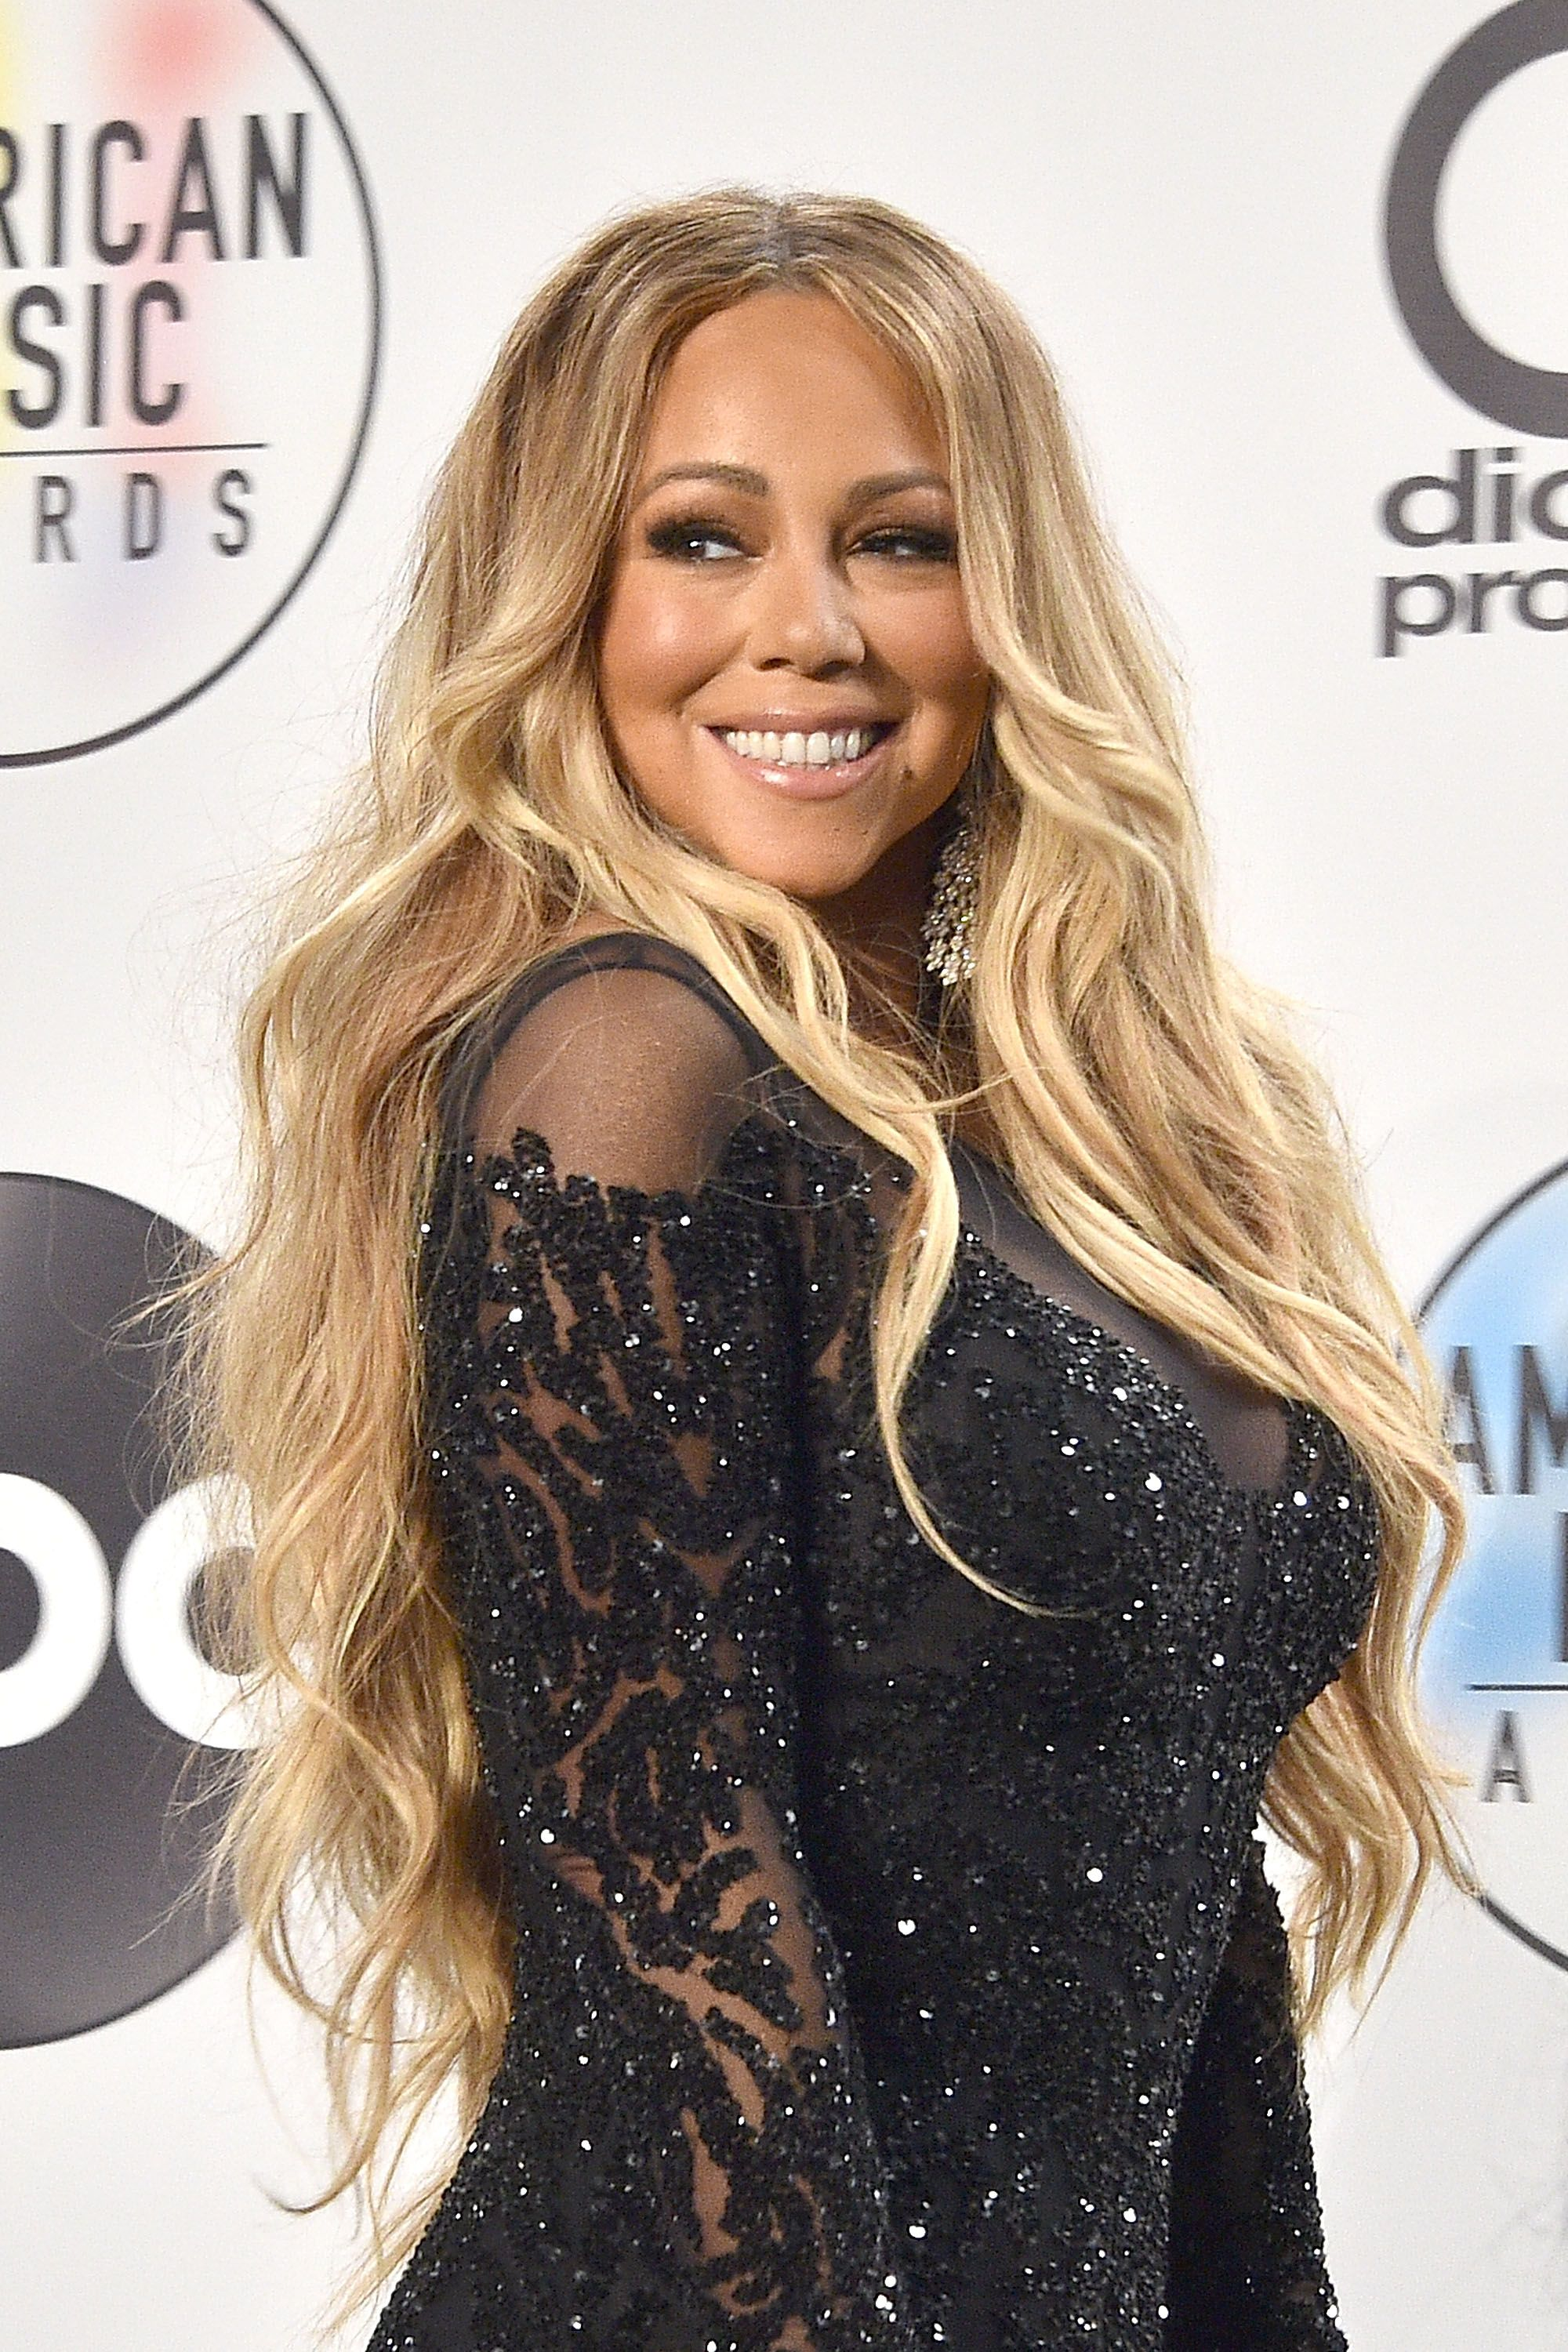 Mariah Carey at the American Music Awards - Press Room on October 9, 2018, in Los Angeles, California   Photo: David Crotty/Patrick McMullan/Getty Images